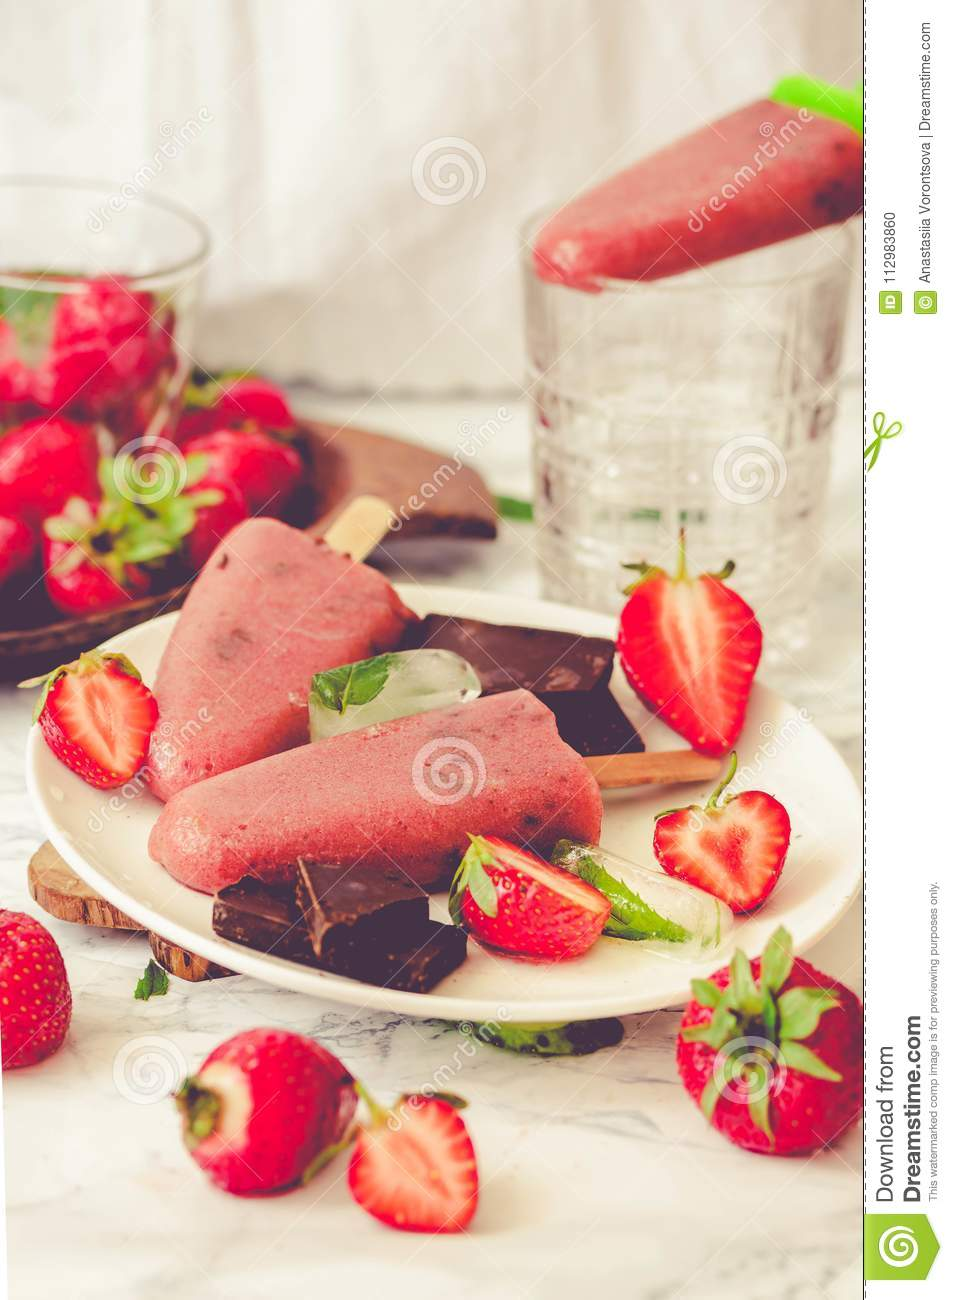 Strawberry ice cream with chocolate popsicles. Raw dessert. Mint